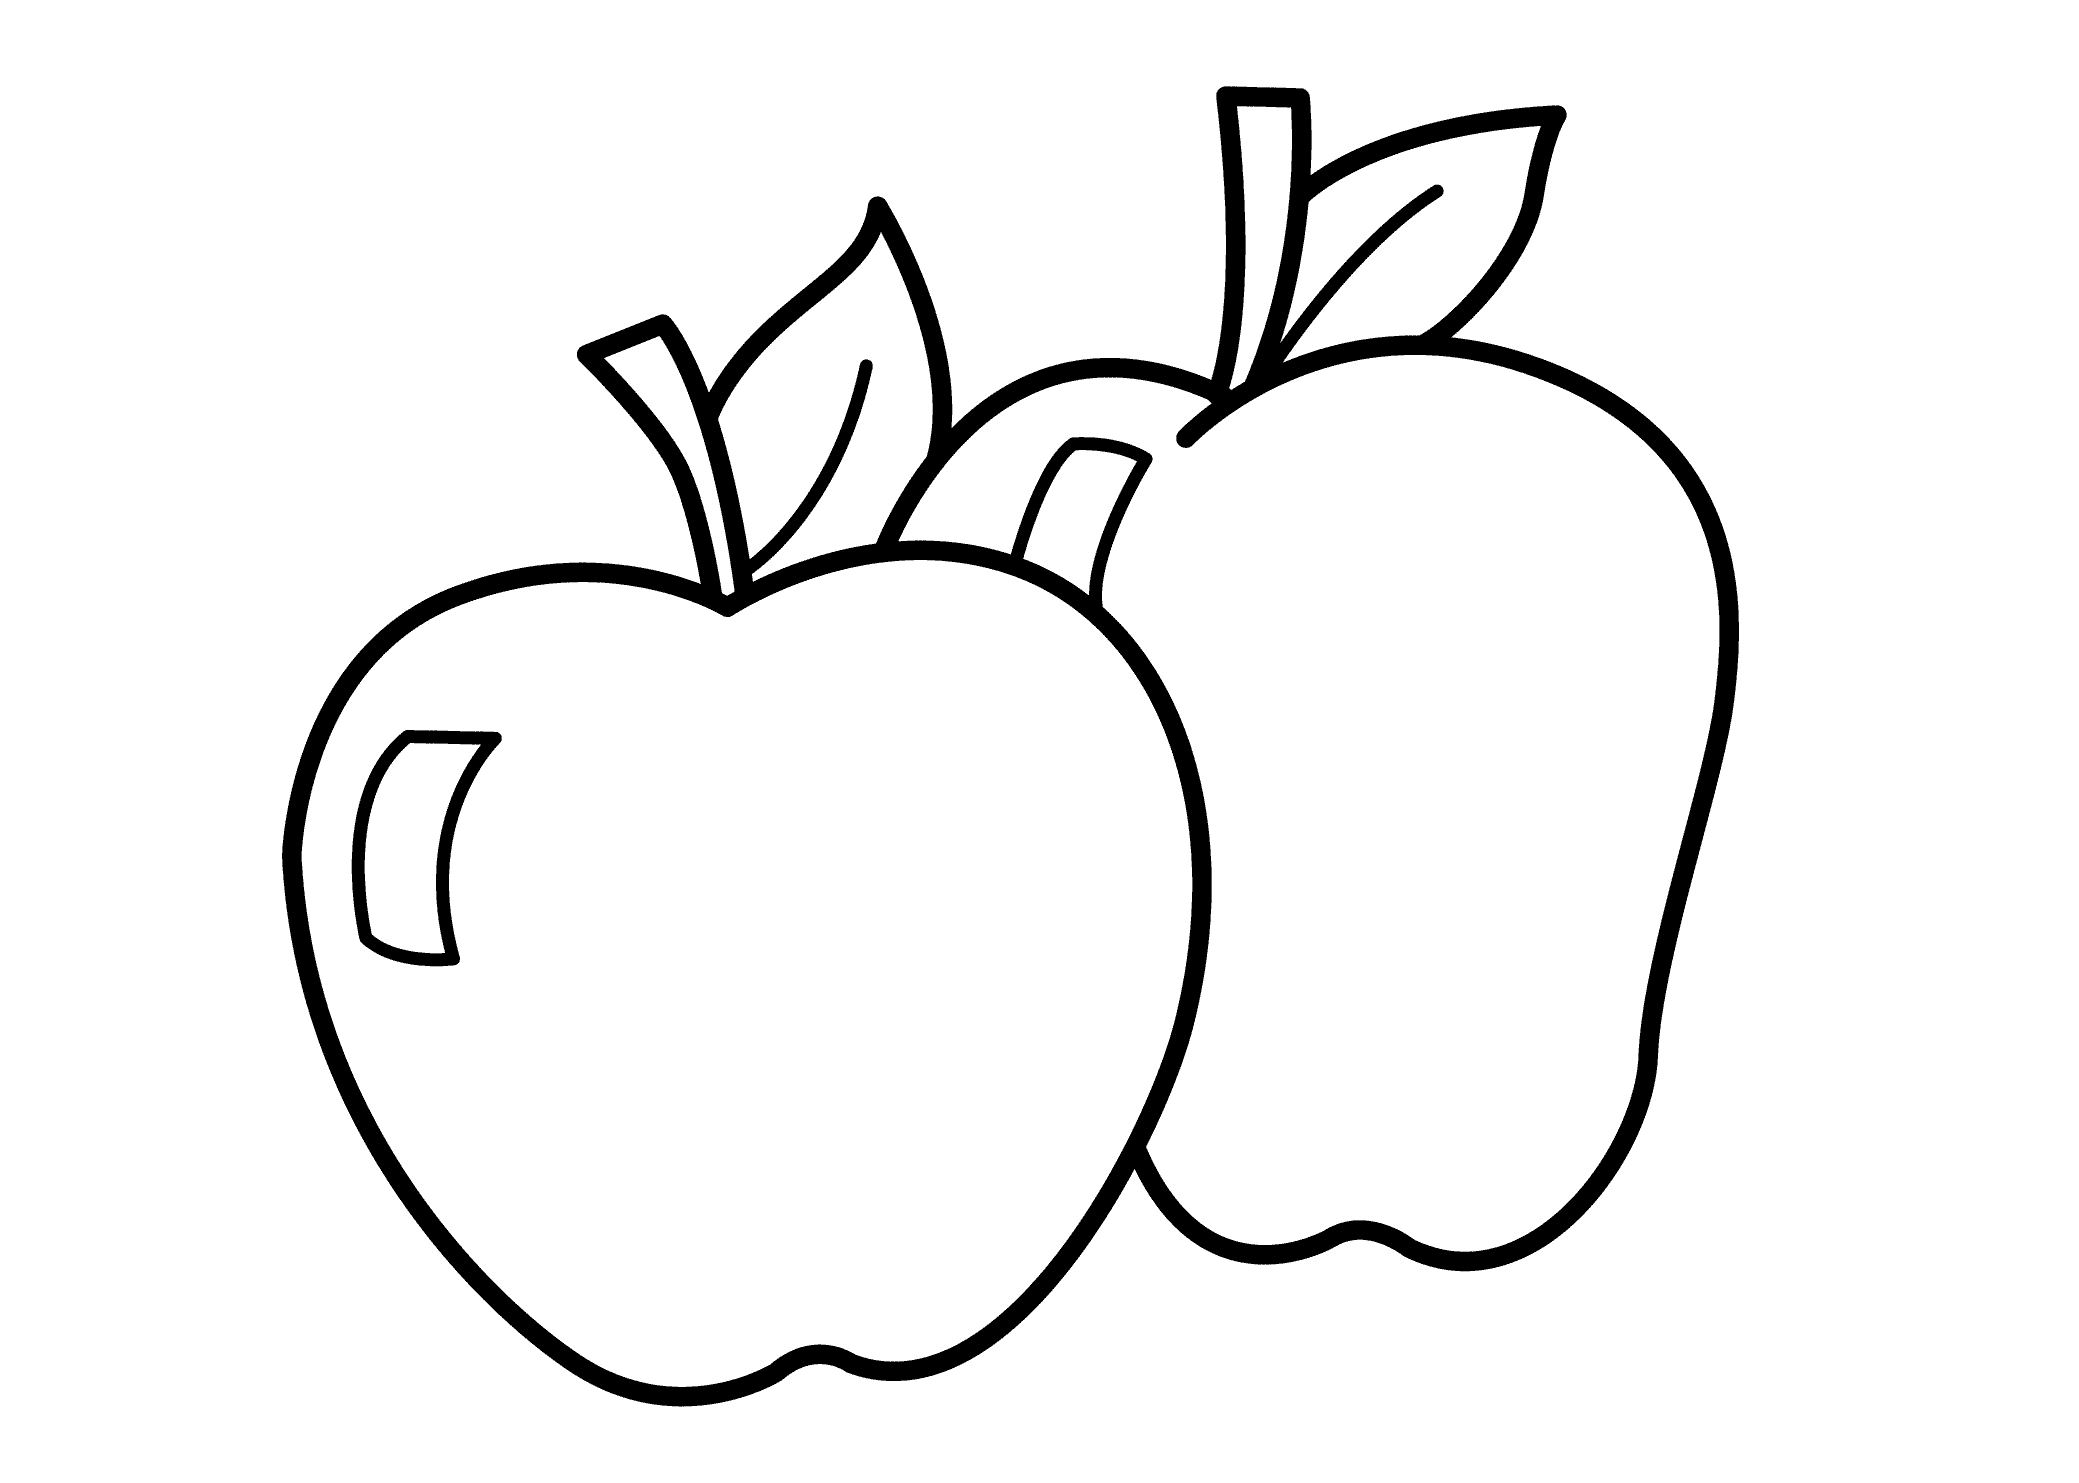 a is for apple coloring page apple coloring pages to print coloring a for page is apple